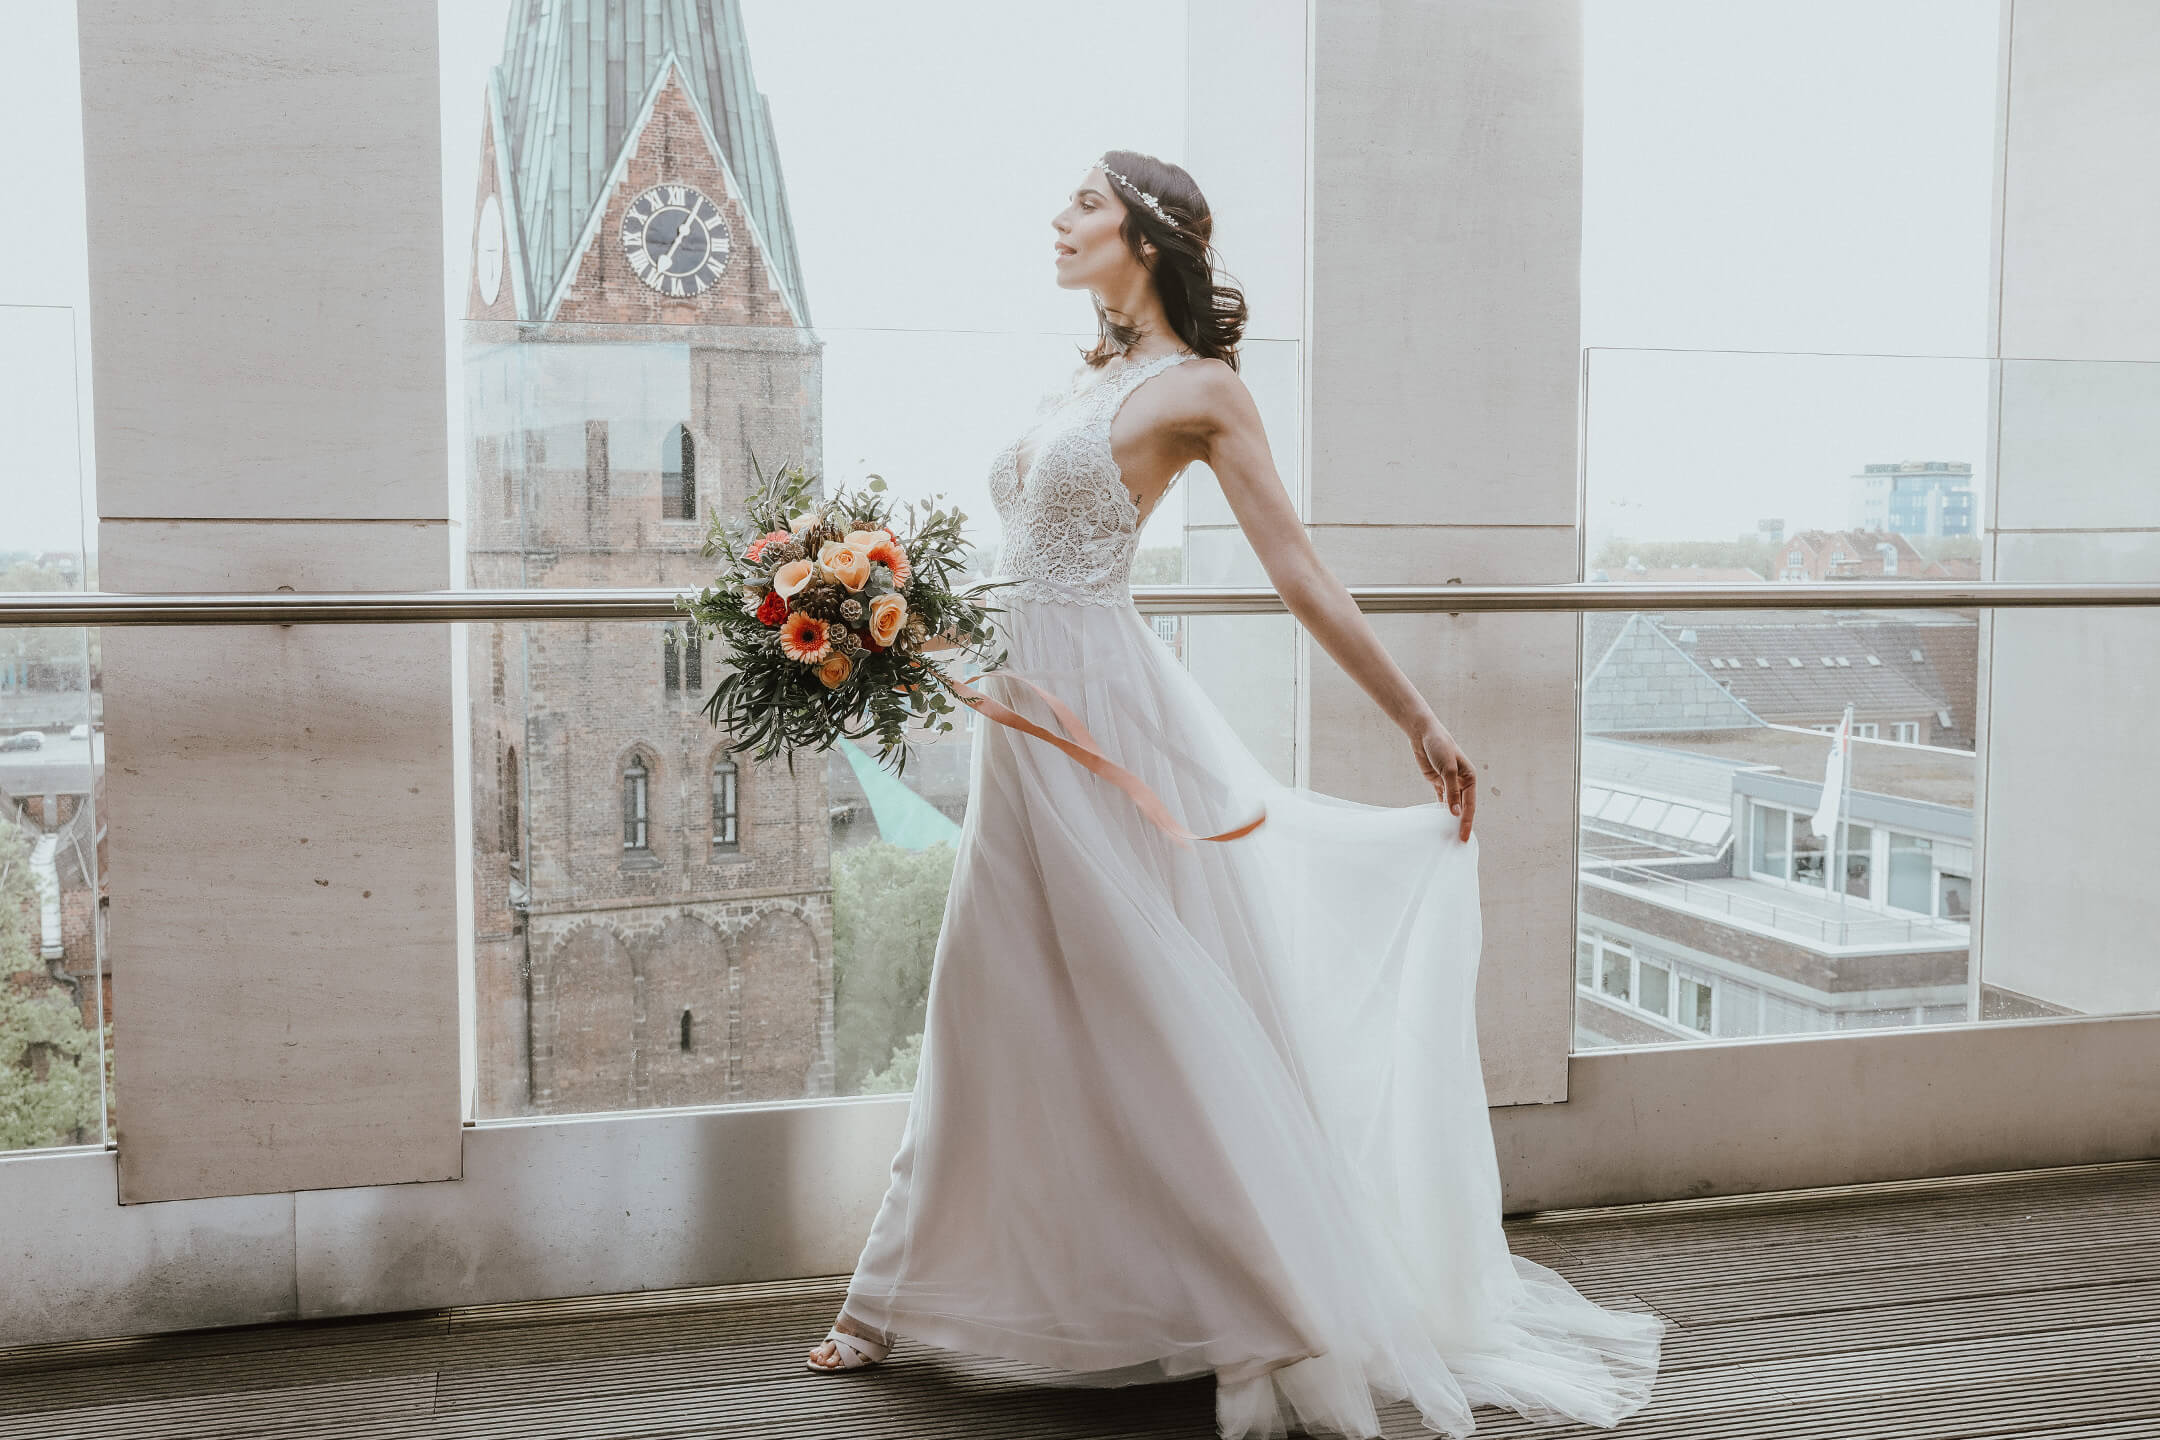 Bride shoot on the roof terrace